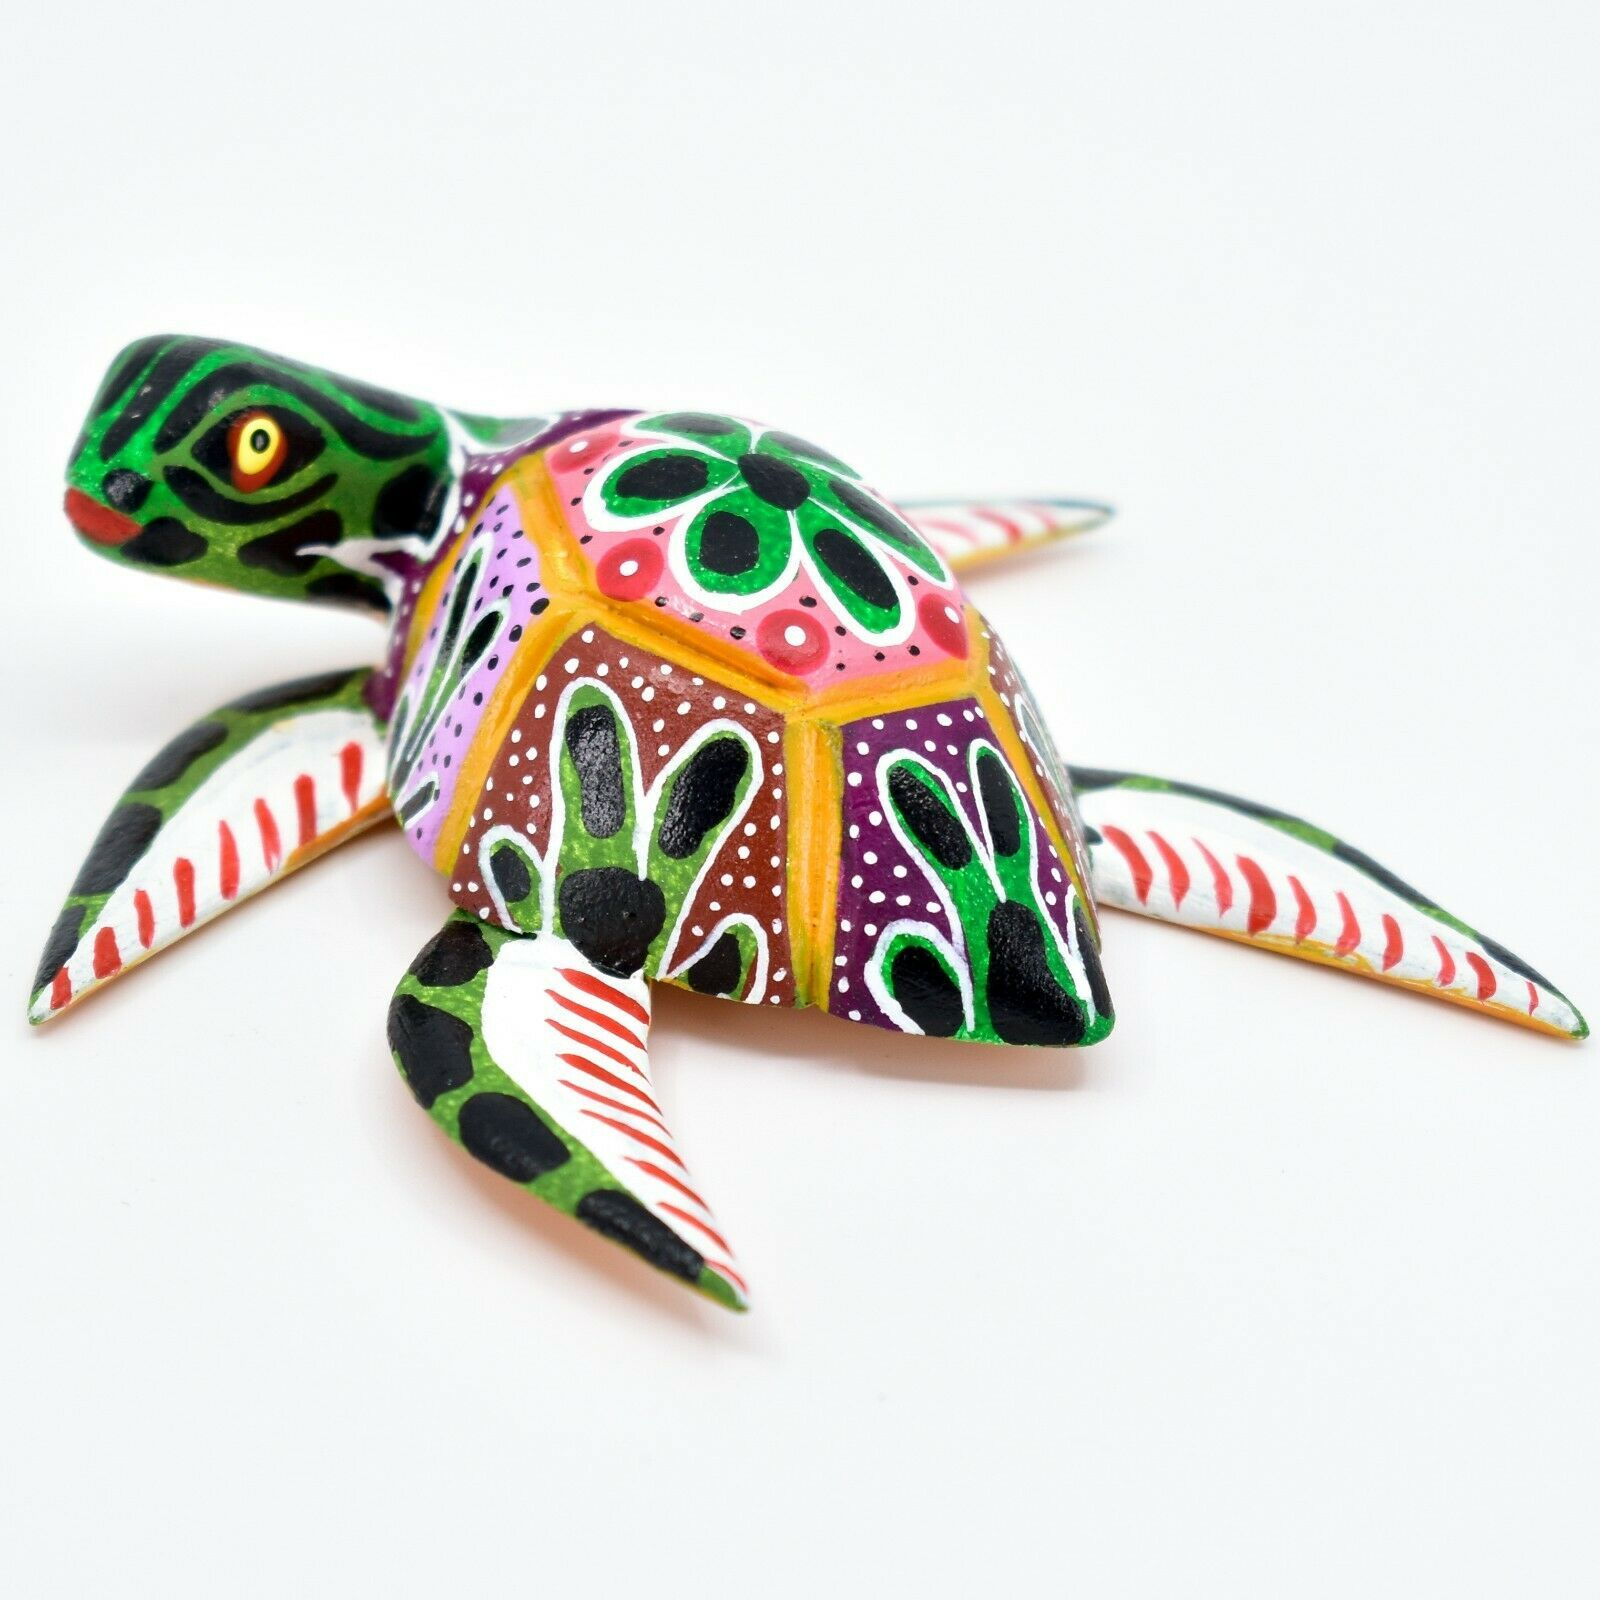 Handmade Alebrijes Oaxacan Copal Wood Carving Painted Folk Art Sea Turtle Figure